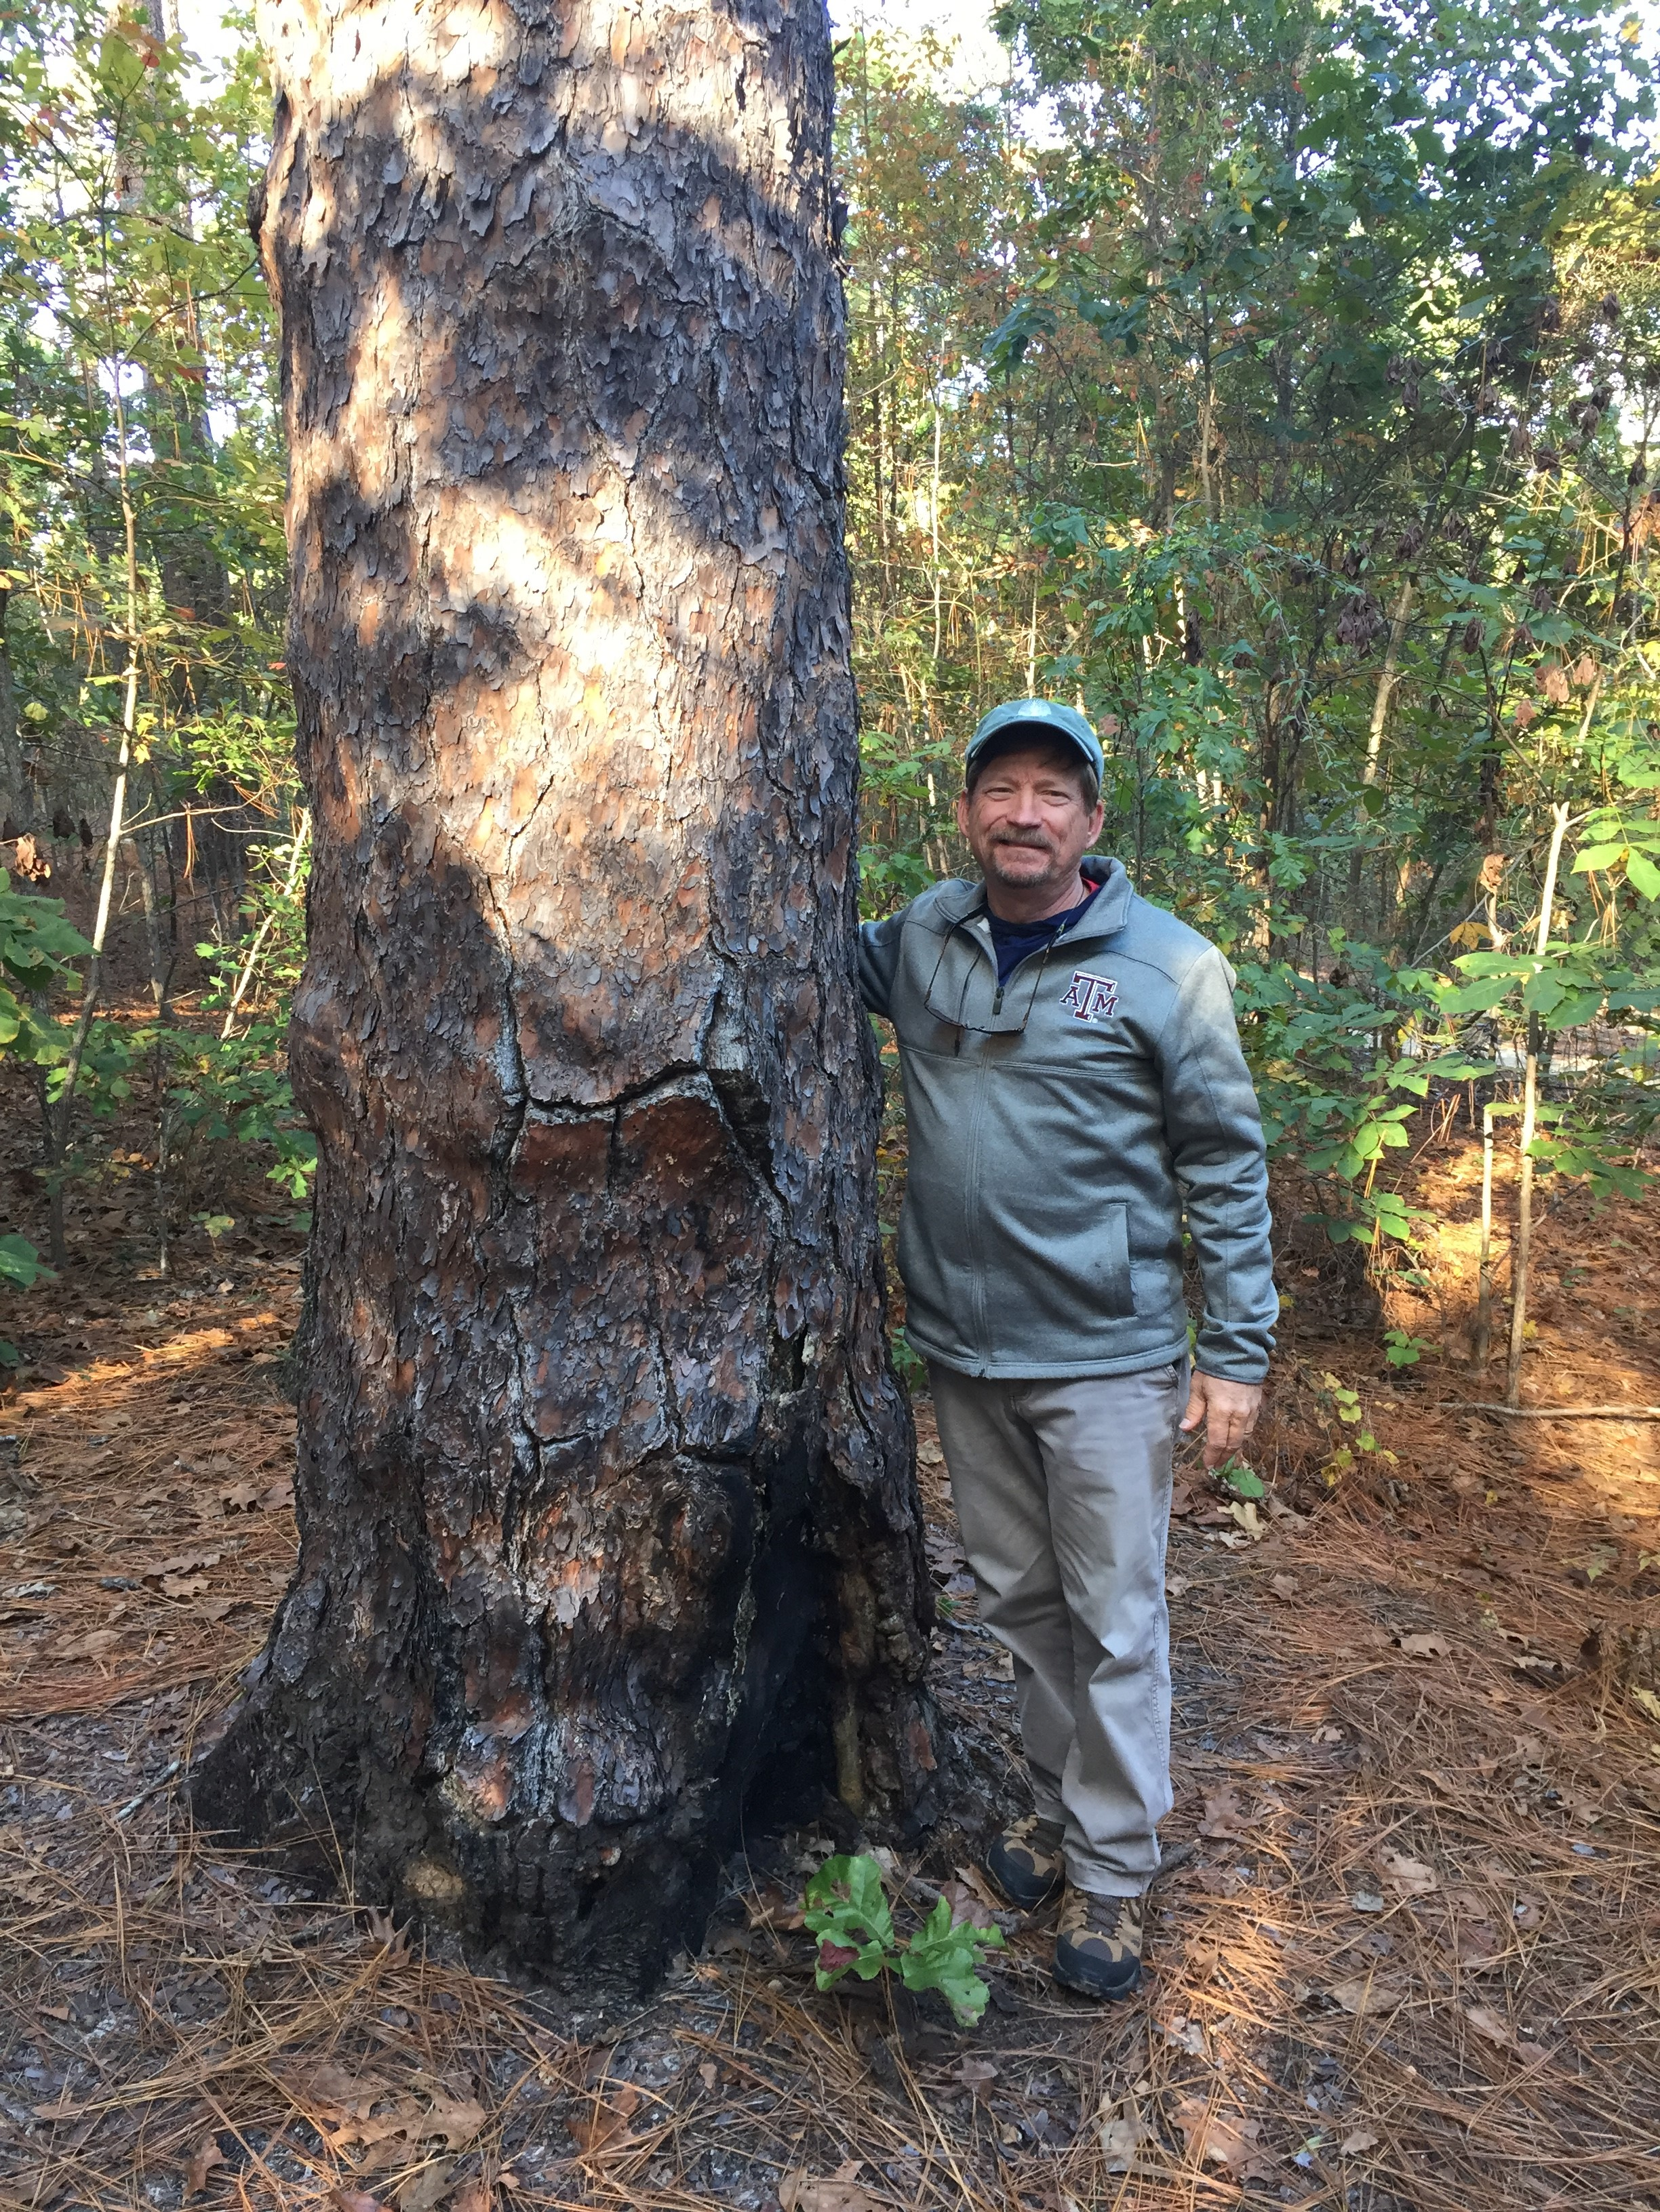 Oldest Longleaf Pine Tree